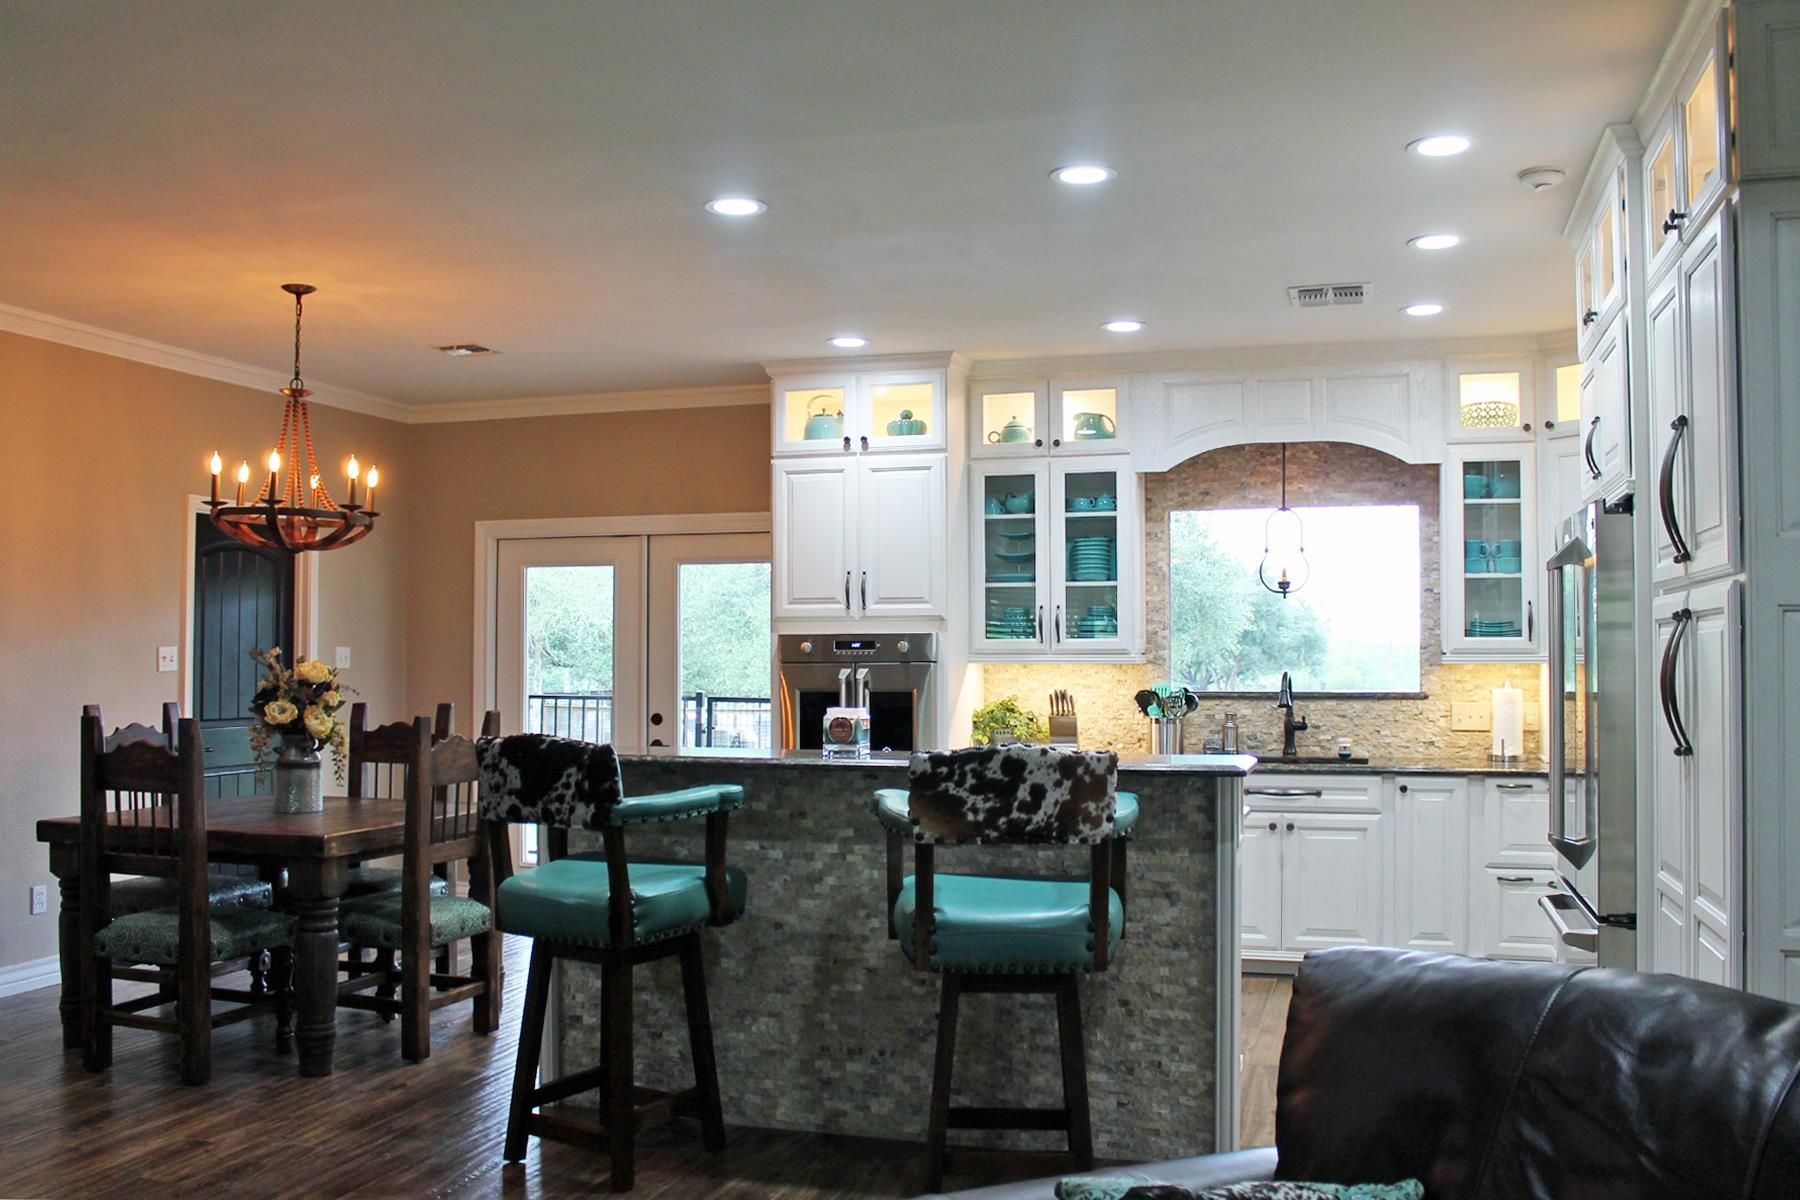 Remodel Tukasa Creations From The Hillsides To The Valleys A Southern Home Shows Beauty From The Inside To The Outside Wellborn Cabinets Home Home Decor